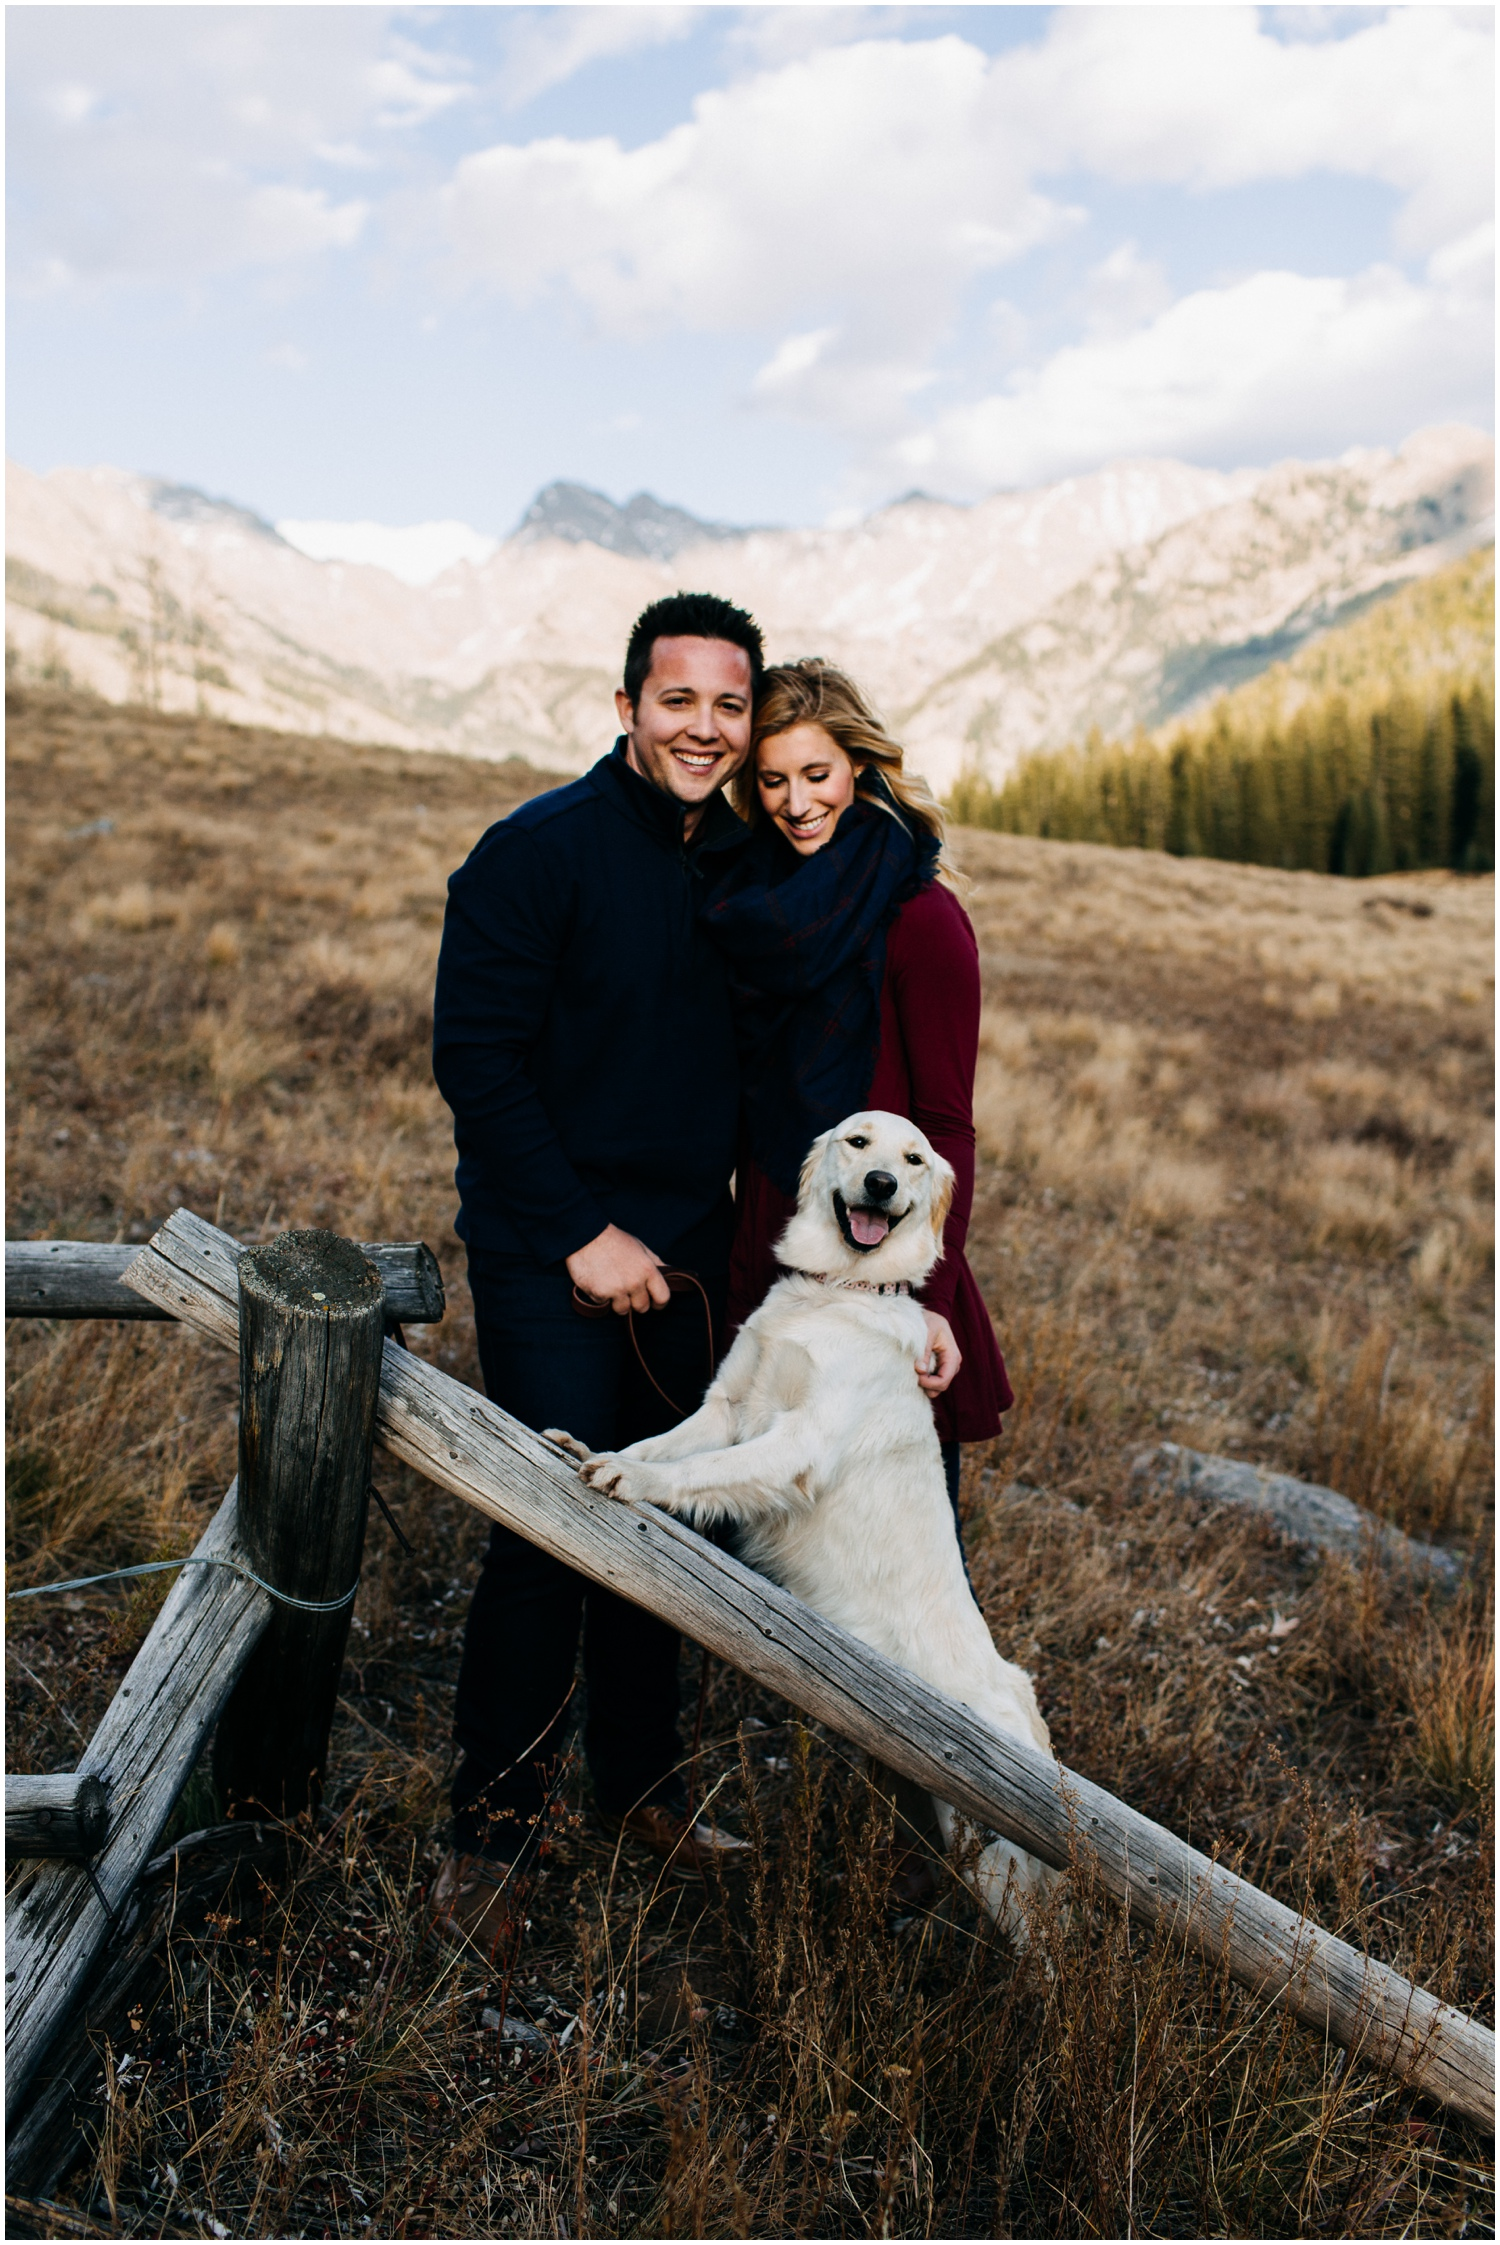 adventure_photo_engagement_session_vail_colorado_taylor_powers__0031.jpg